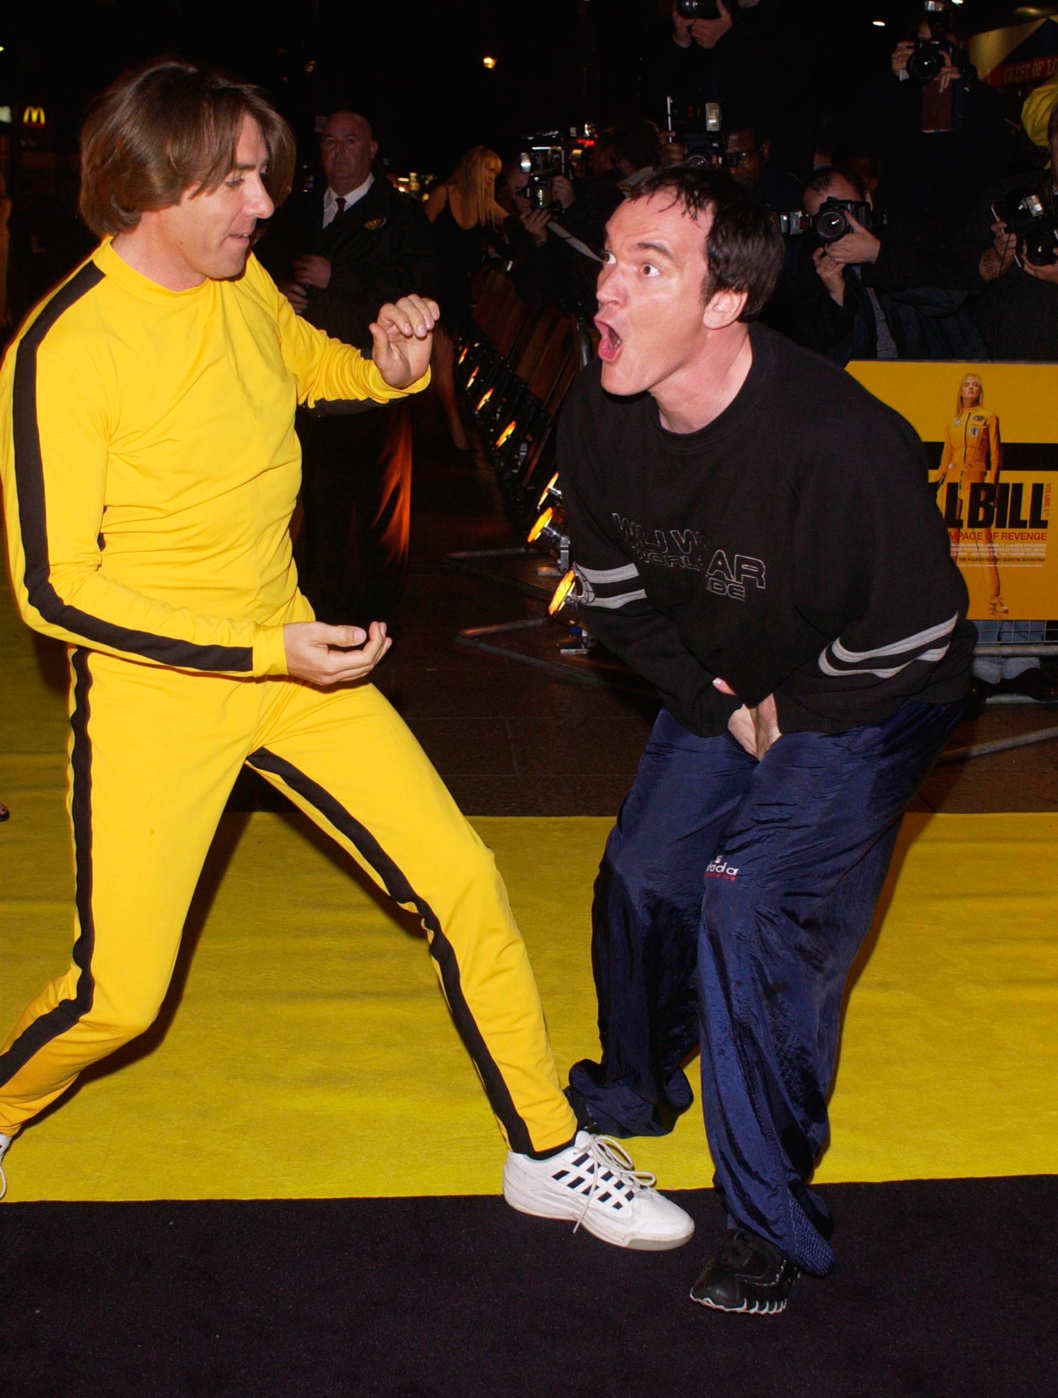 02/10/03  Jonathan Ross & Quentin Tarantino attend the premiere of Kill Bill at the Empire, Leicester Square London  Rune Hellestad/Corbis